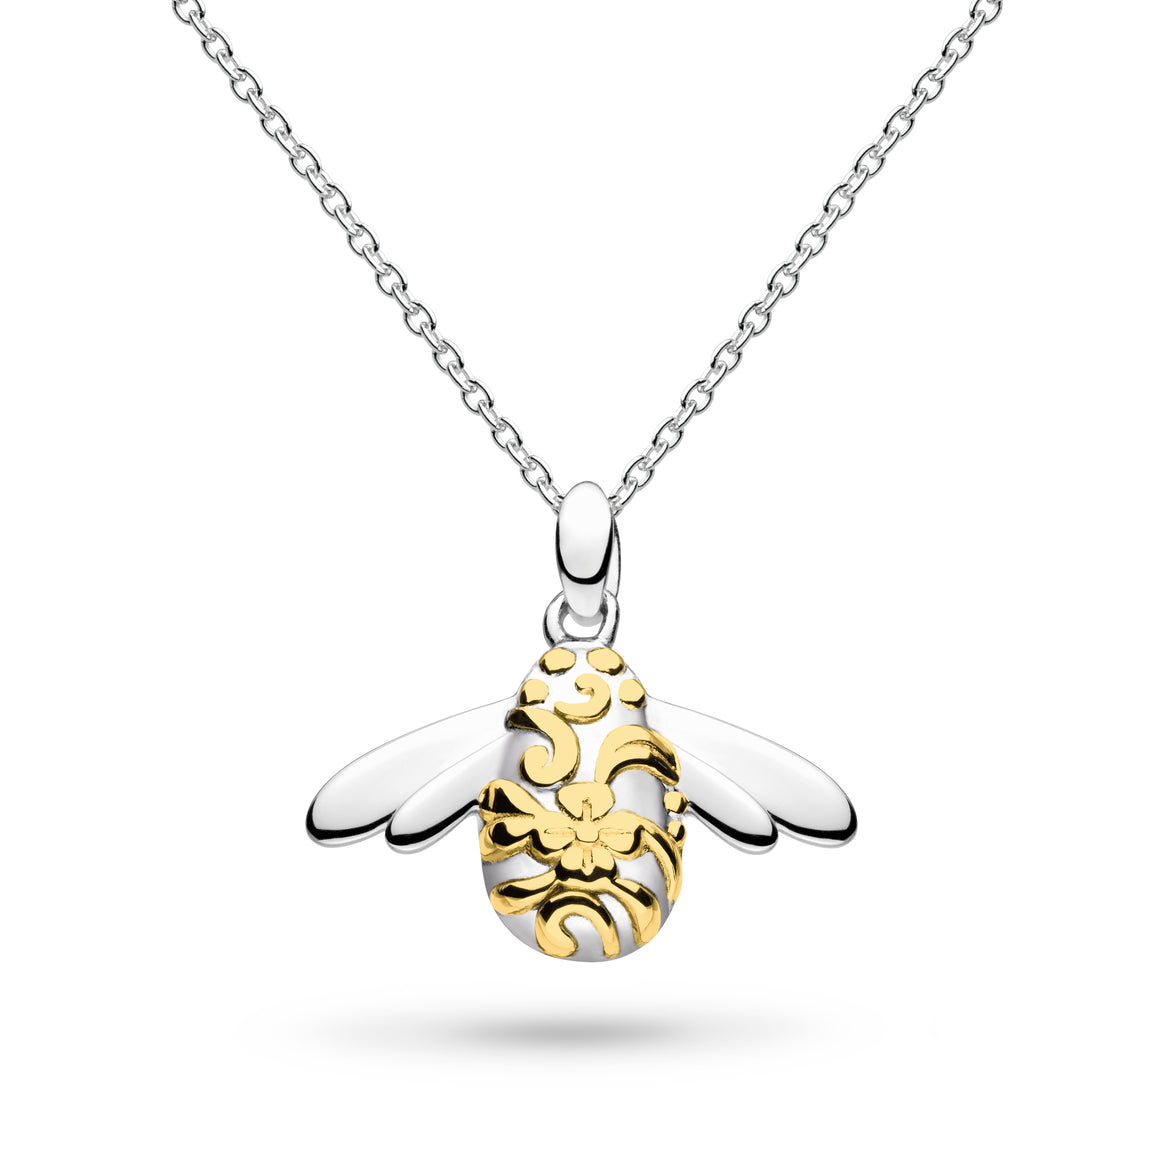 Blossom Bumblebee Gold Plate Necklace - 90339gd014